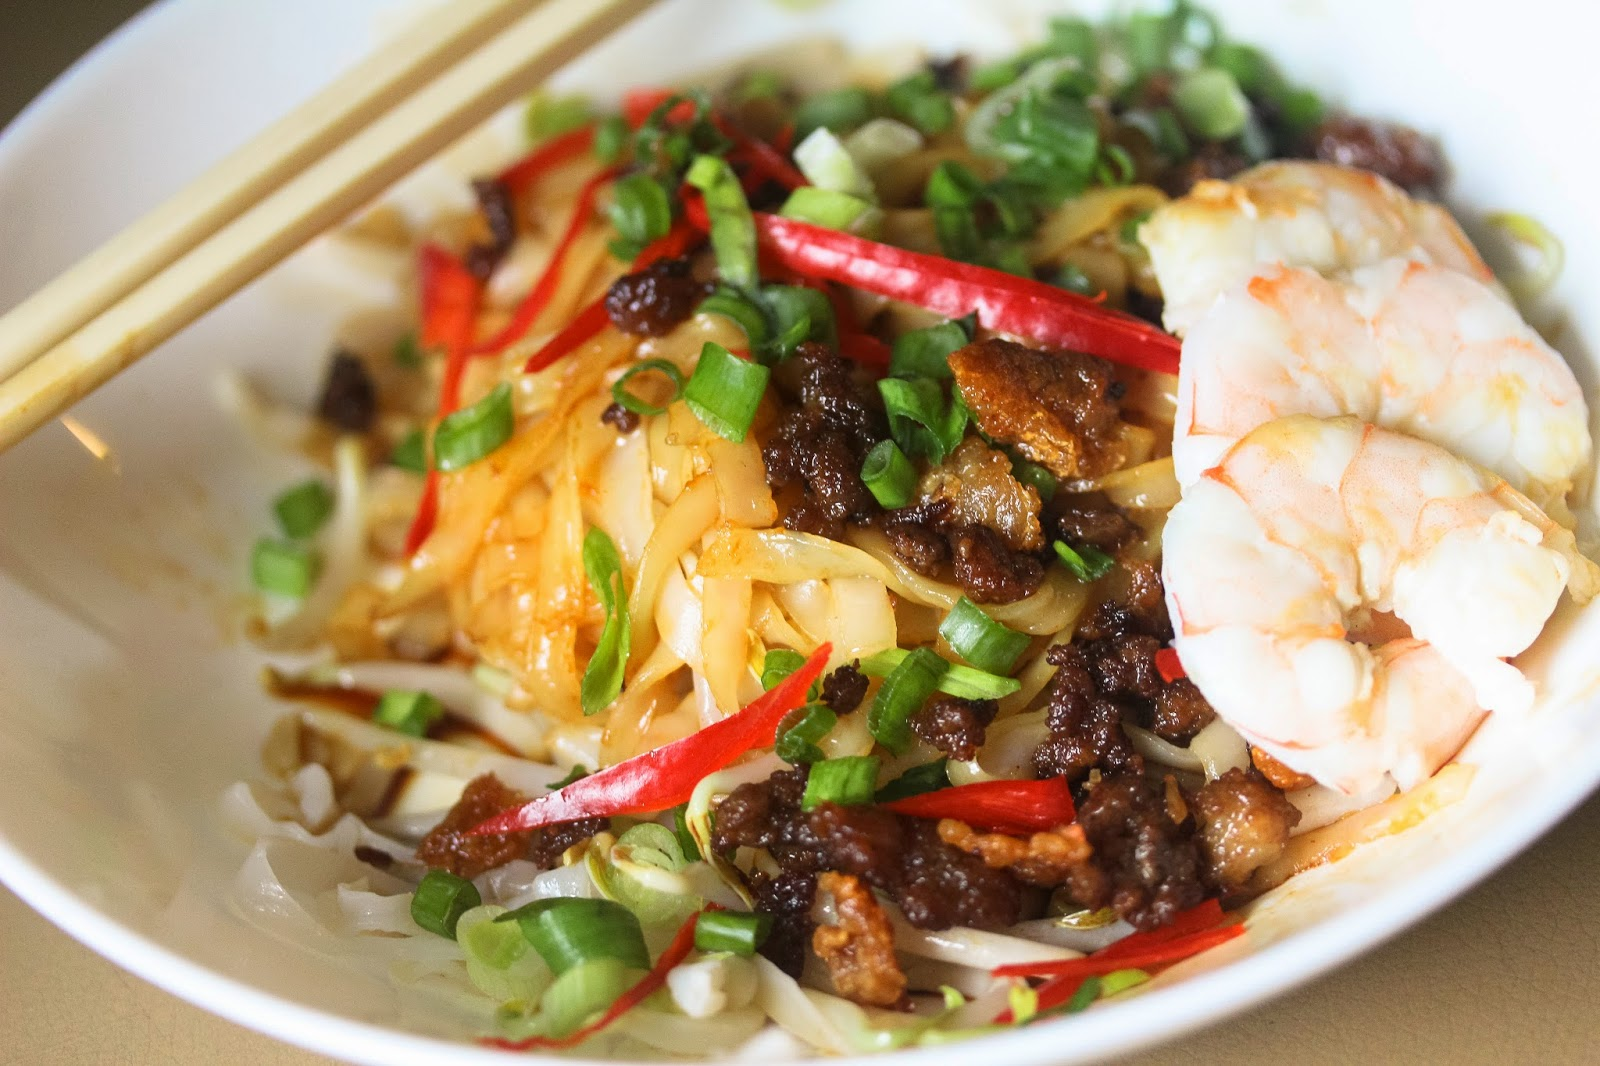 Dry Hor Fun (flat rice noodles) with Minced Pork